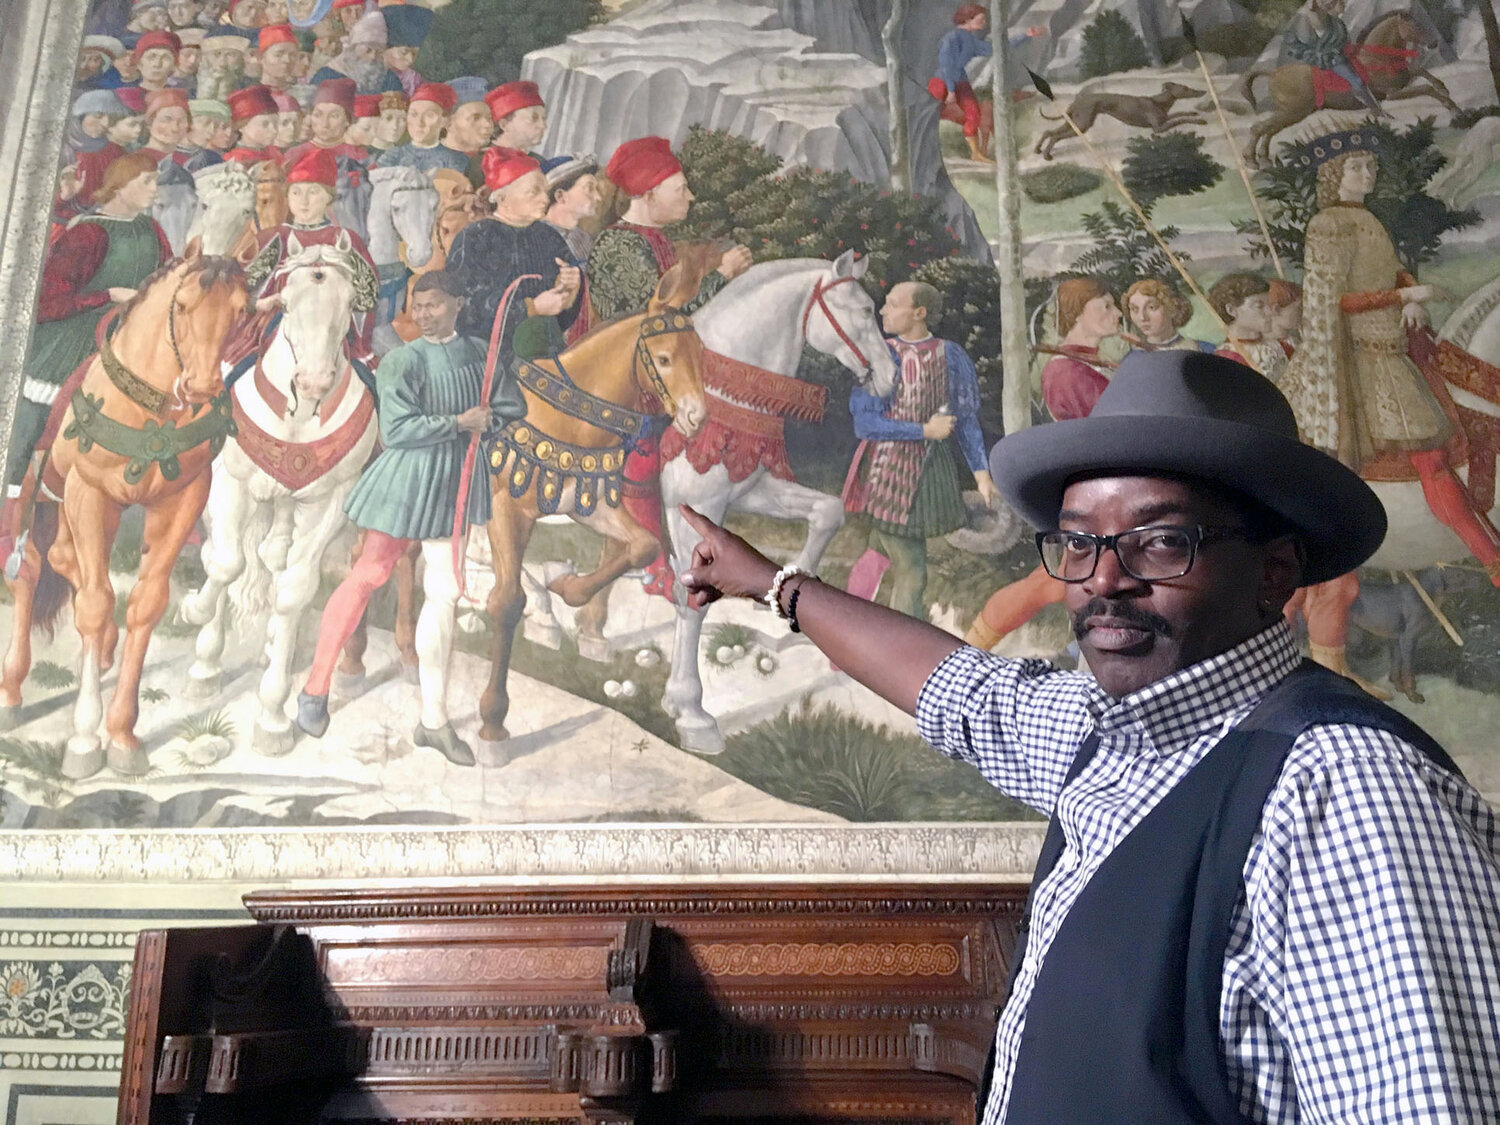 Visual artist, Fab 5 Freddy, shows off the Procession of the Magi fresco by Gozzoli.